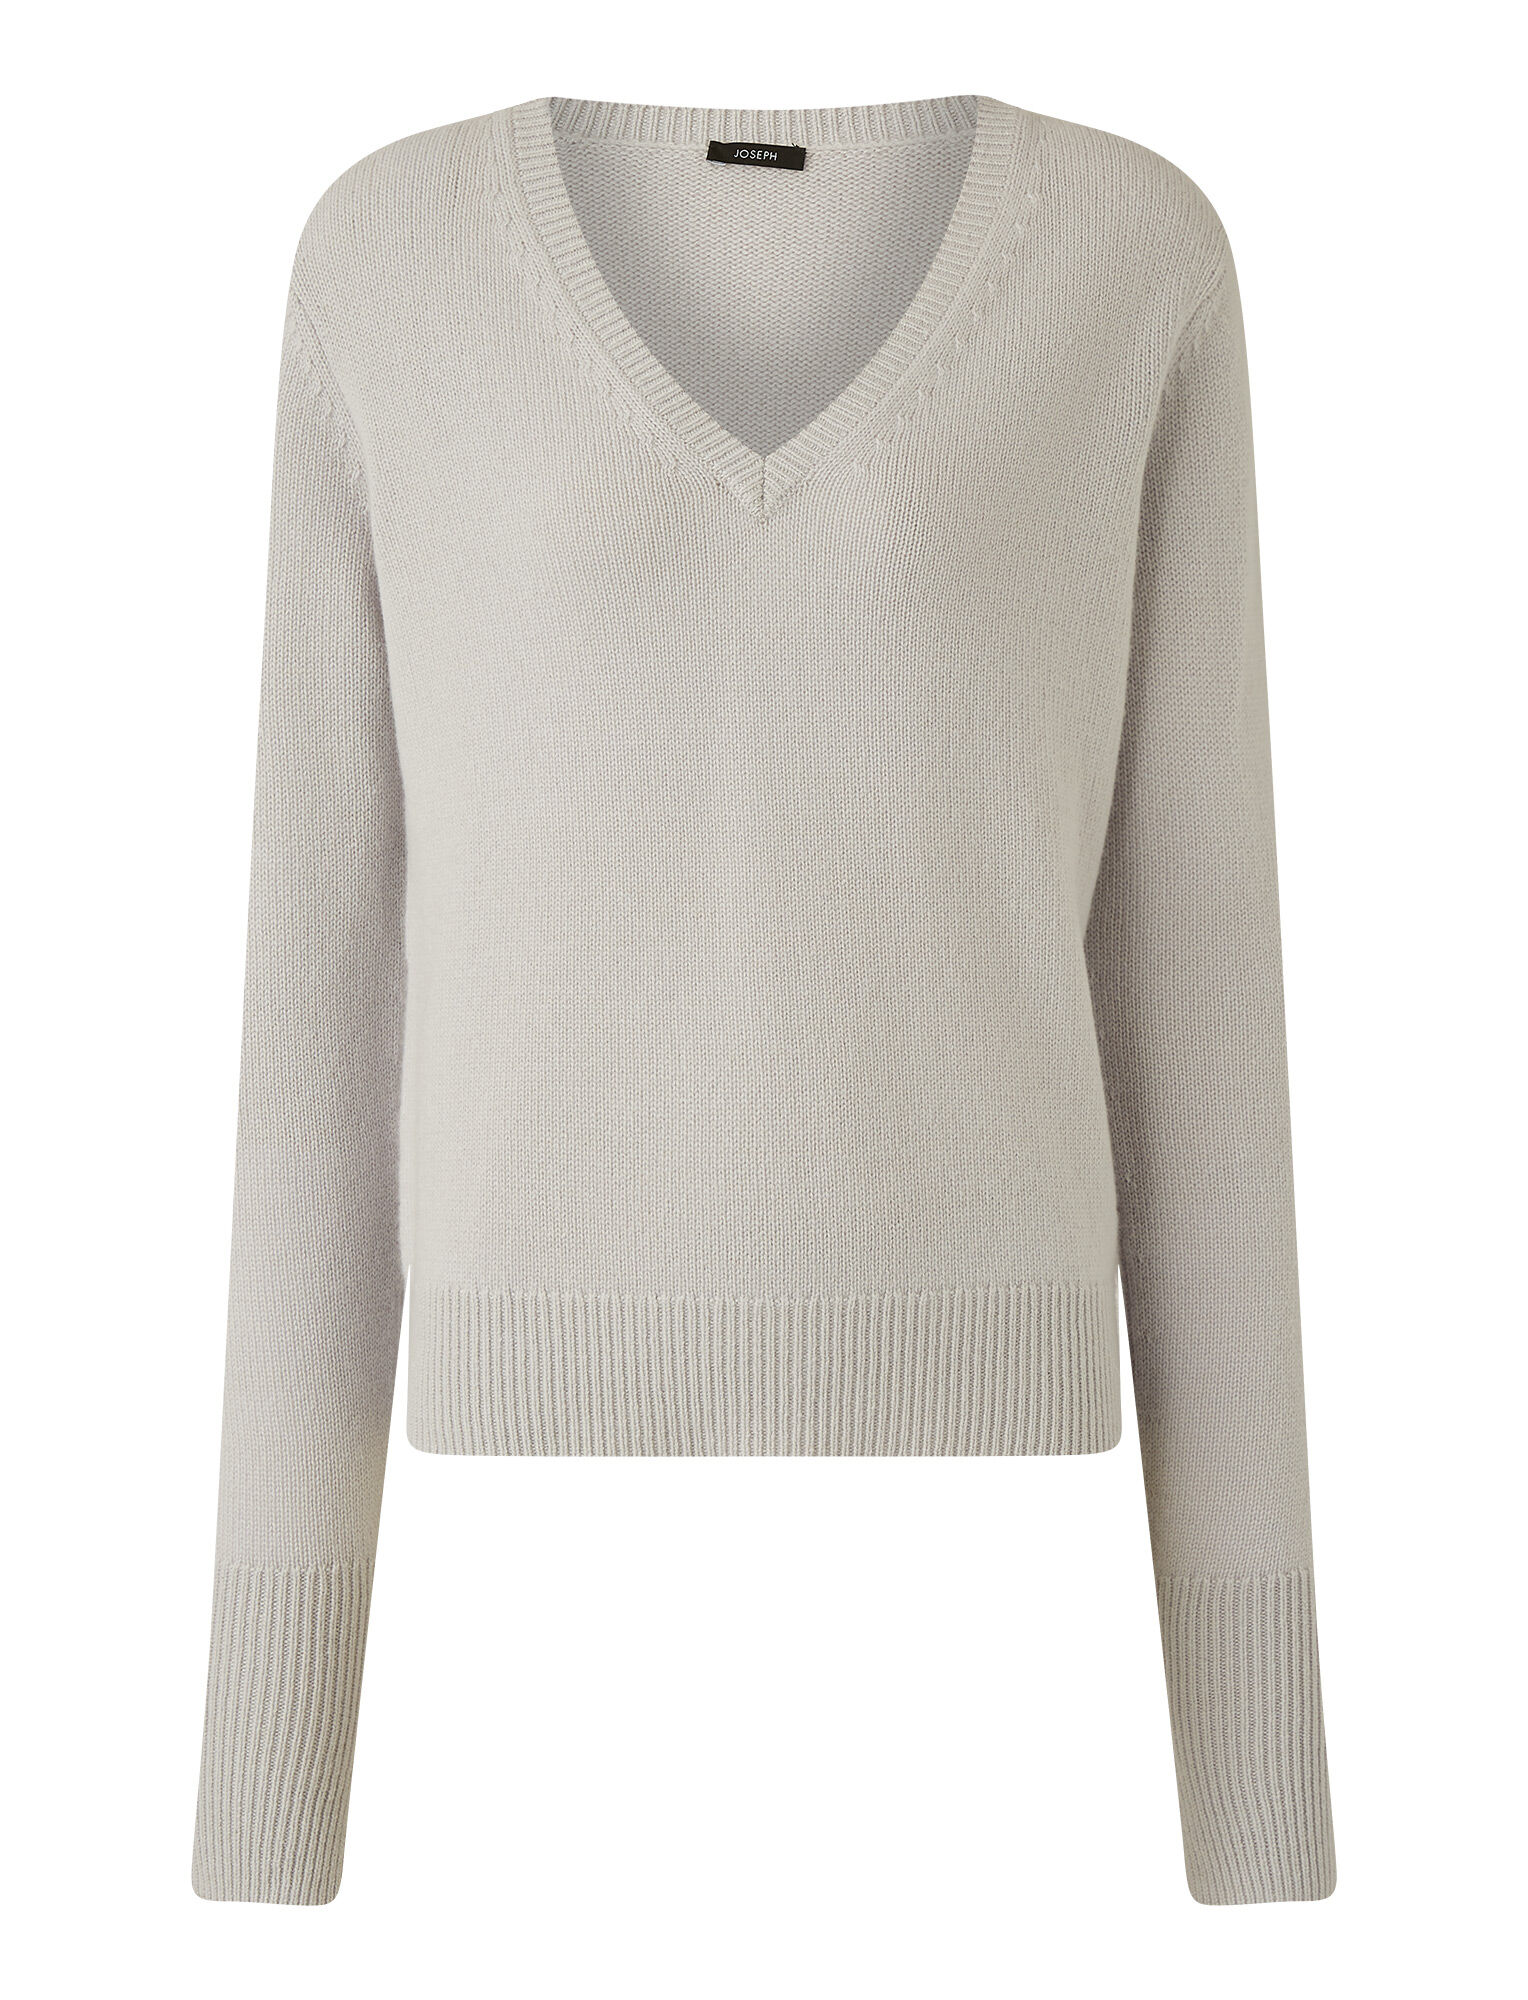 Joseph, Pure Cashmere V Neck Jumper, in SILVER